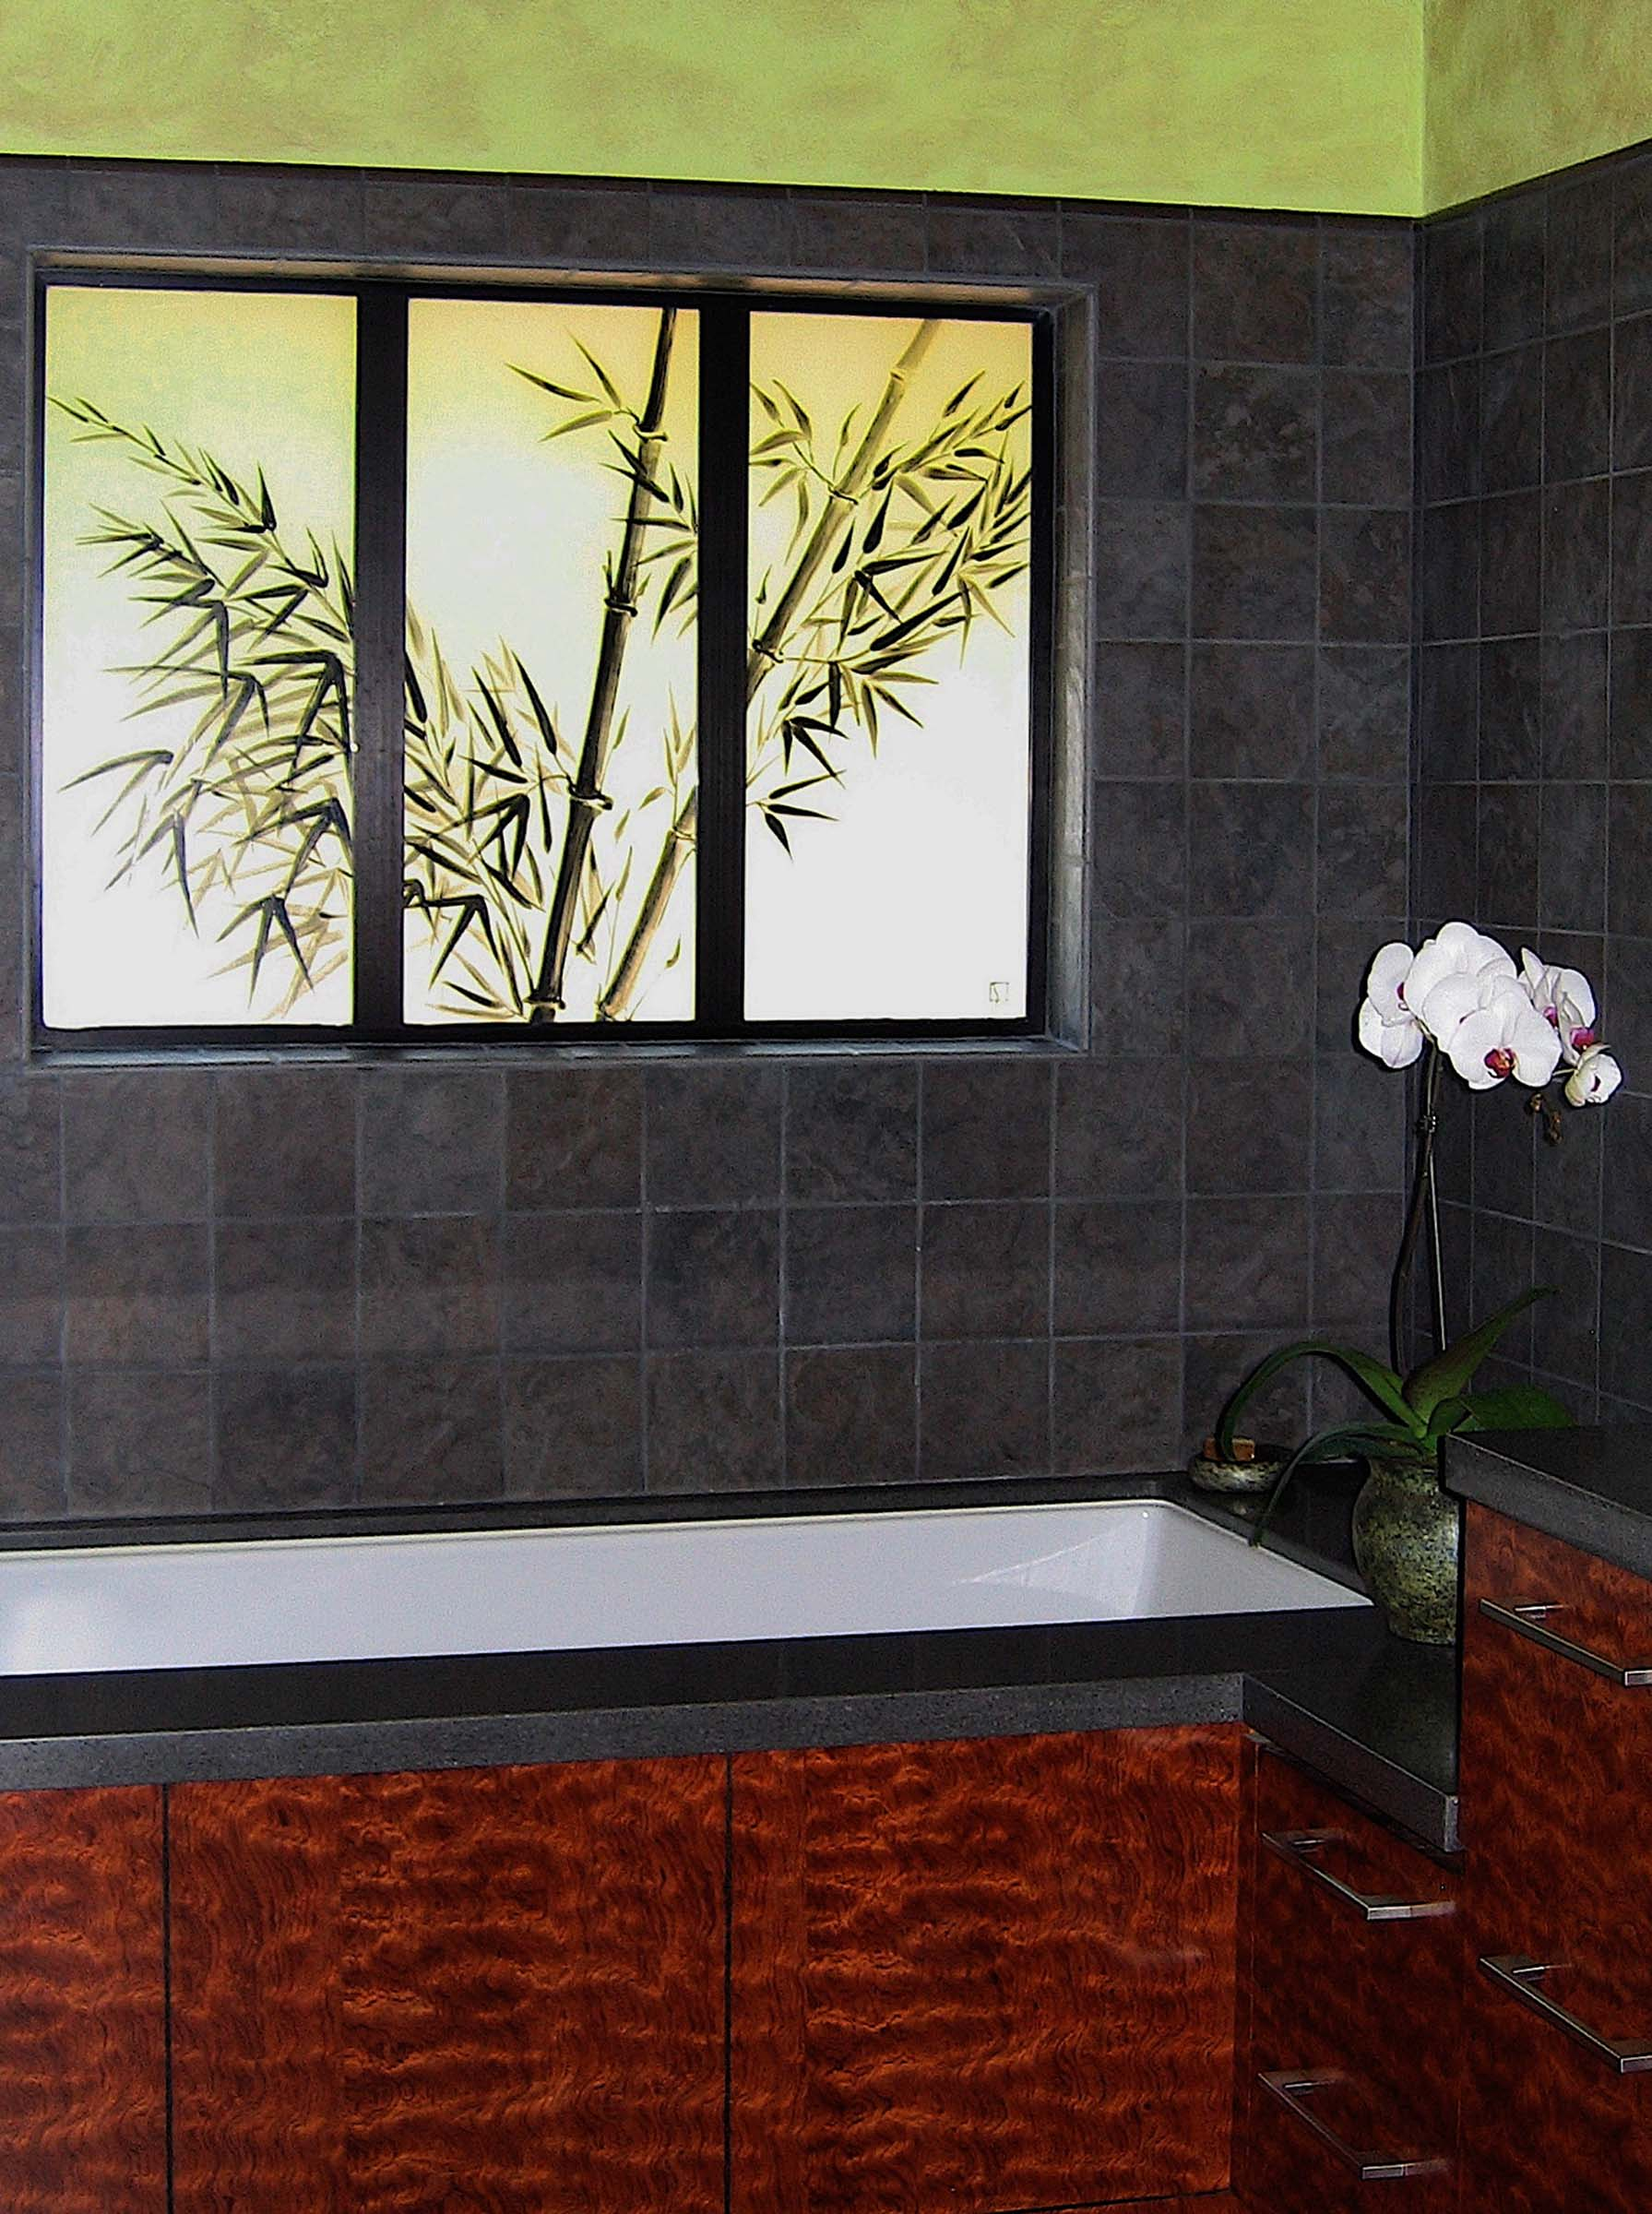 Bamboo Triptych